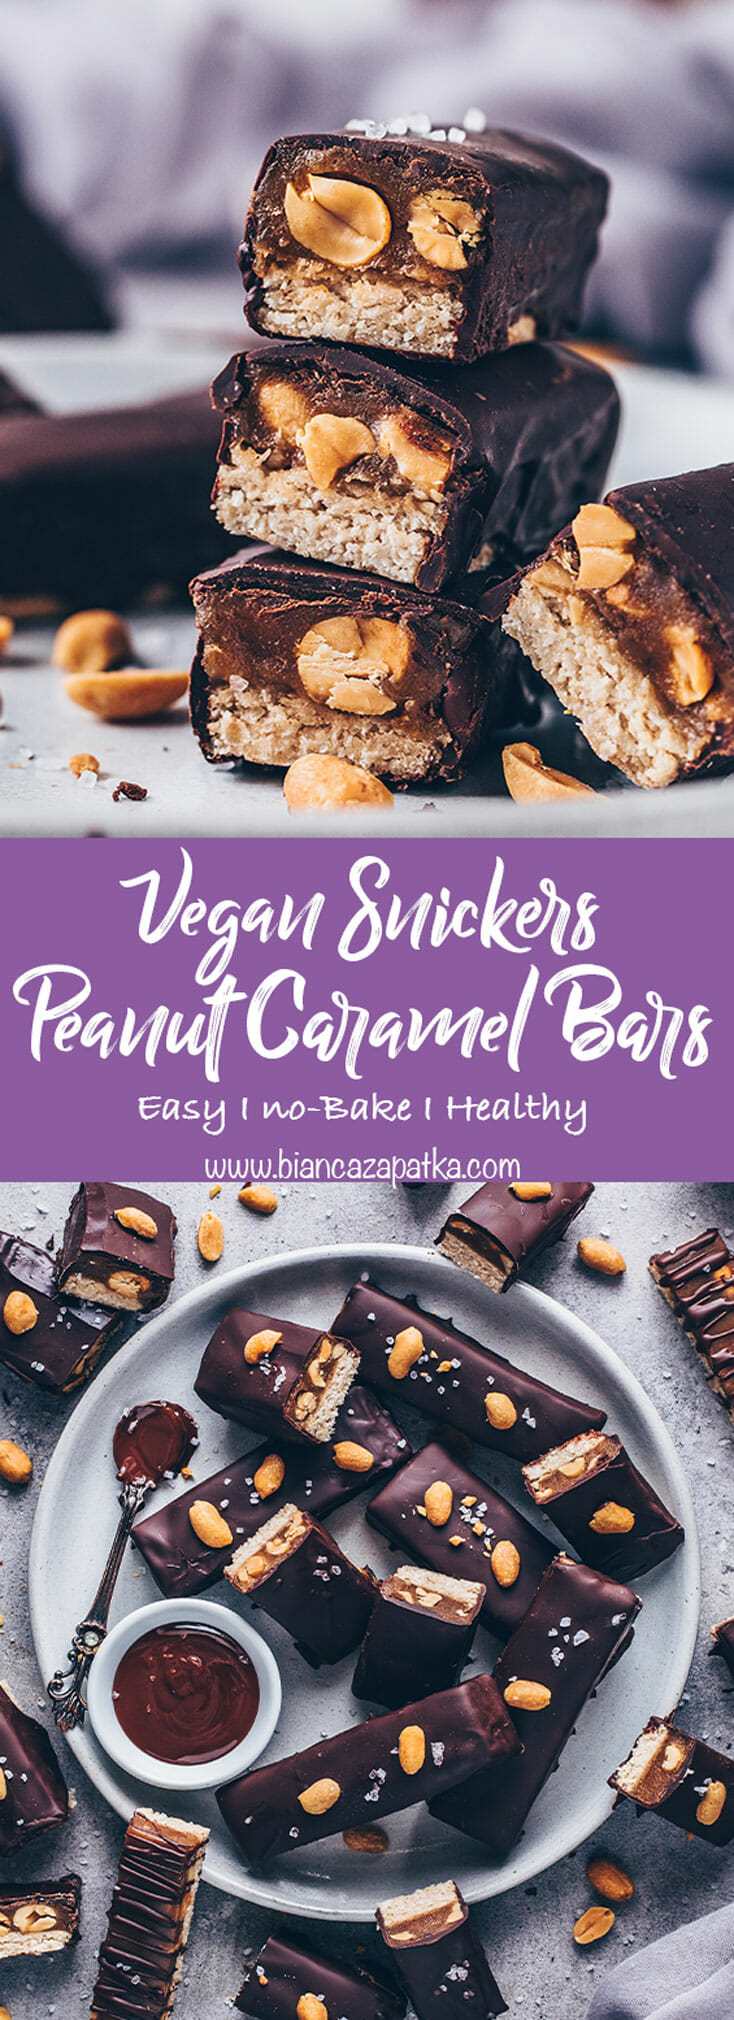 Vegan Snickers (Peanut Caramel Chocolate Bars)